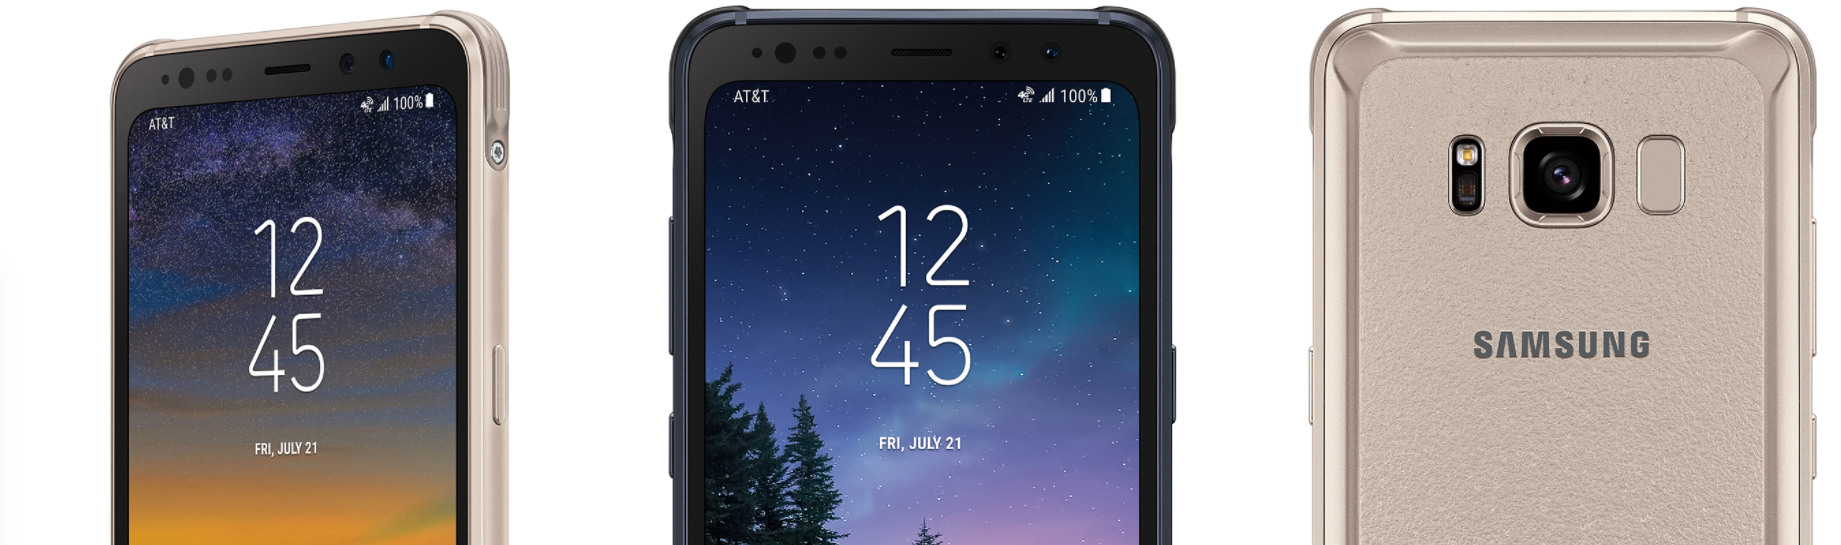 Unlocked variant of the Galaxy S8 Active certified by the Wi-Fi